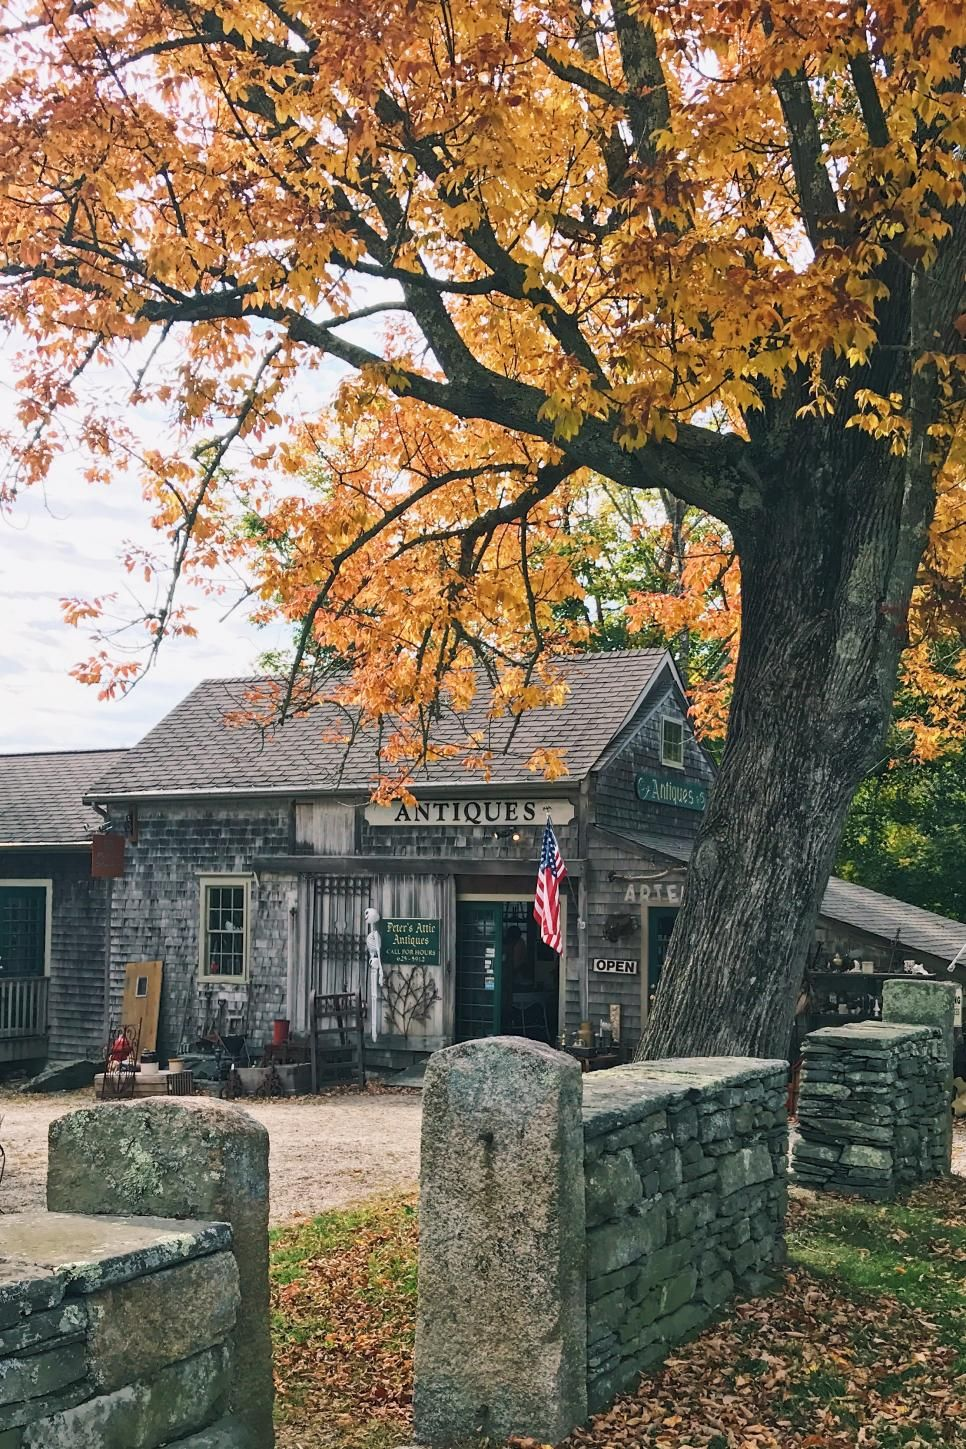 A fall season in Vermont is the perfect getaway. Get